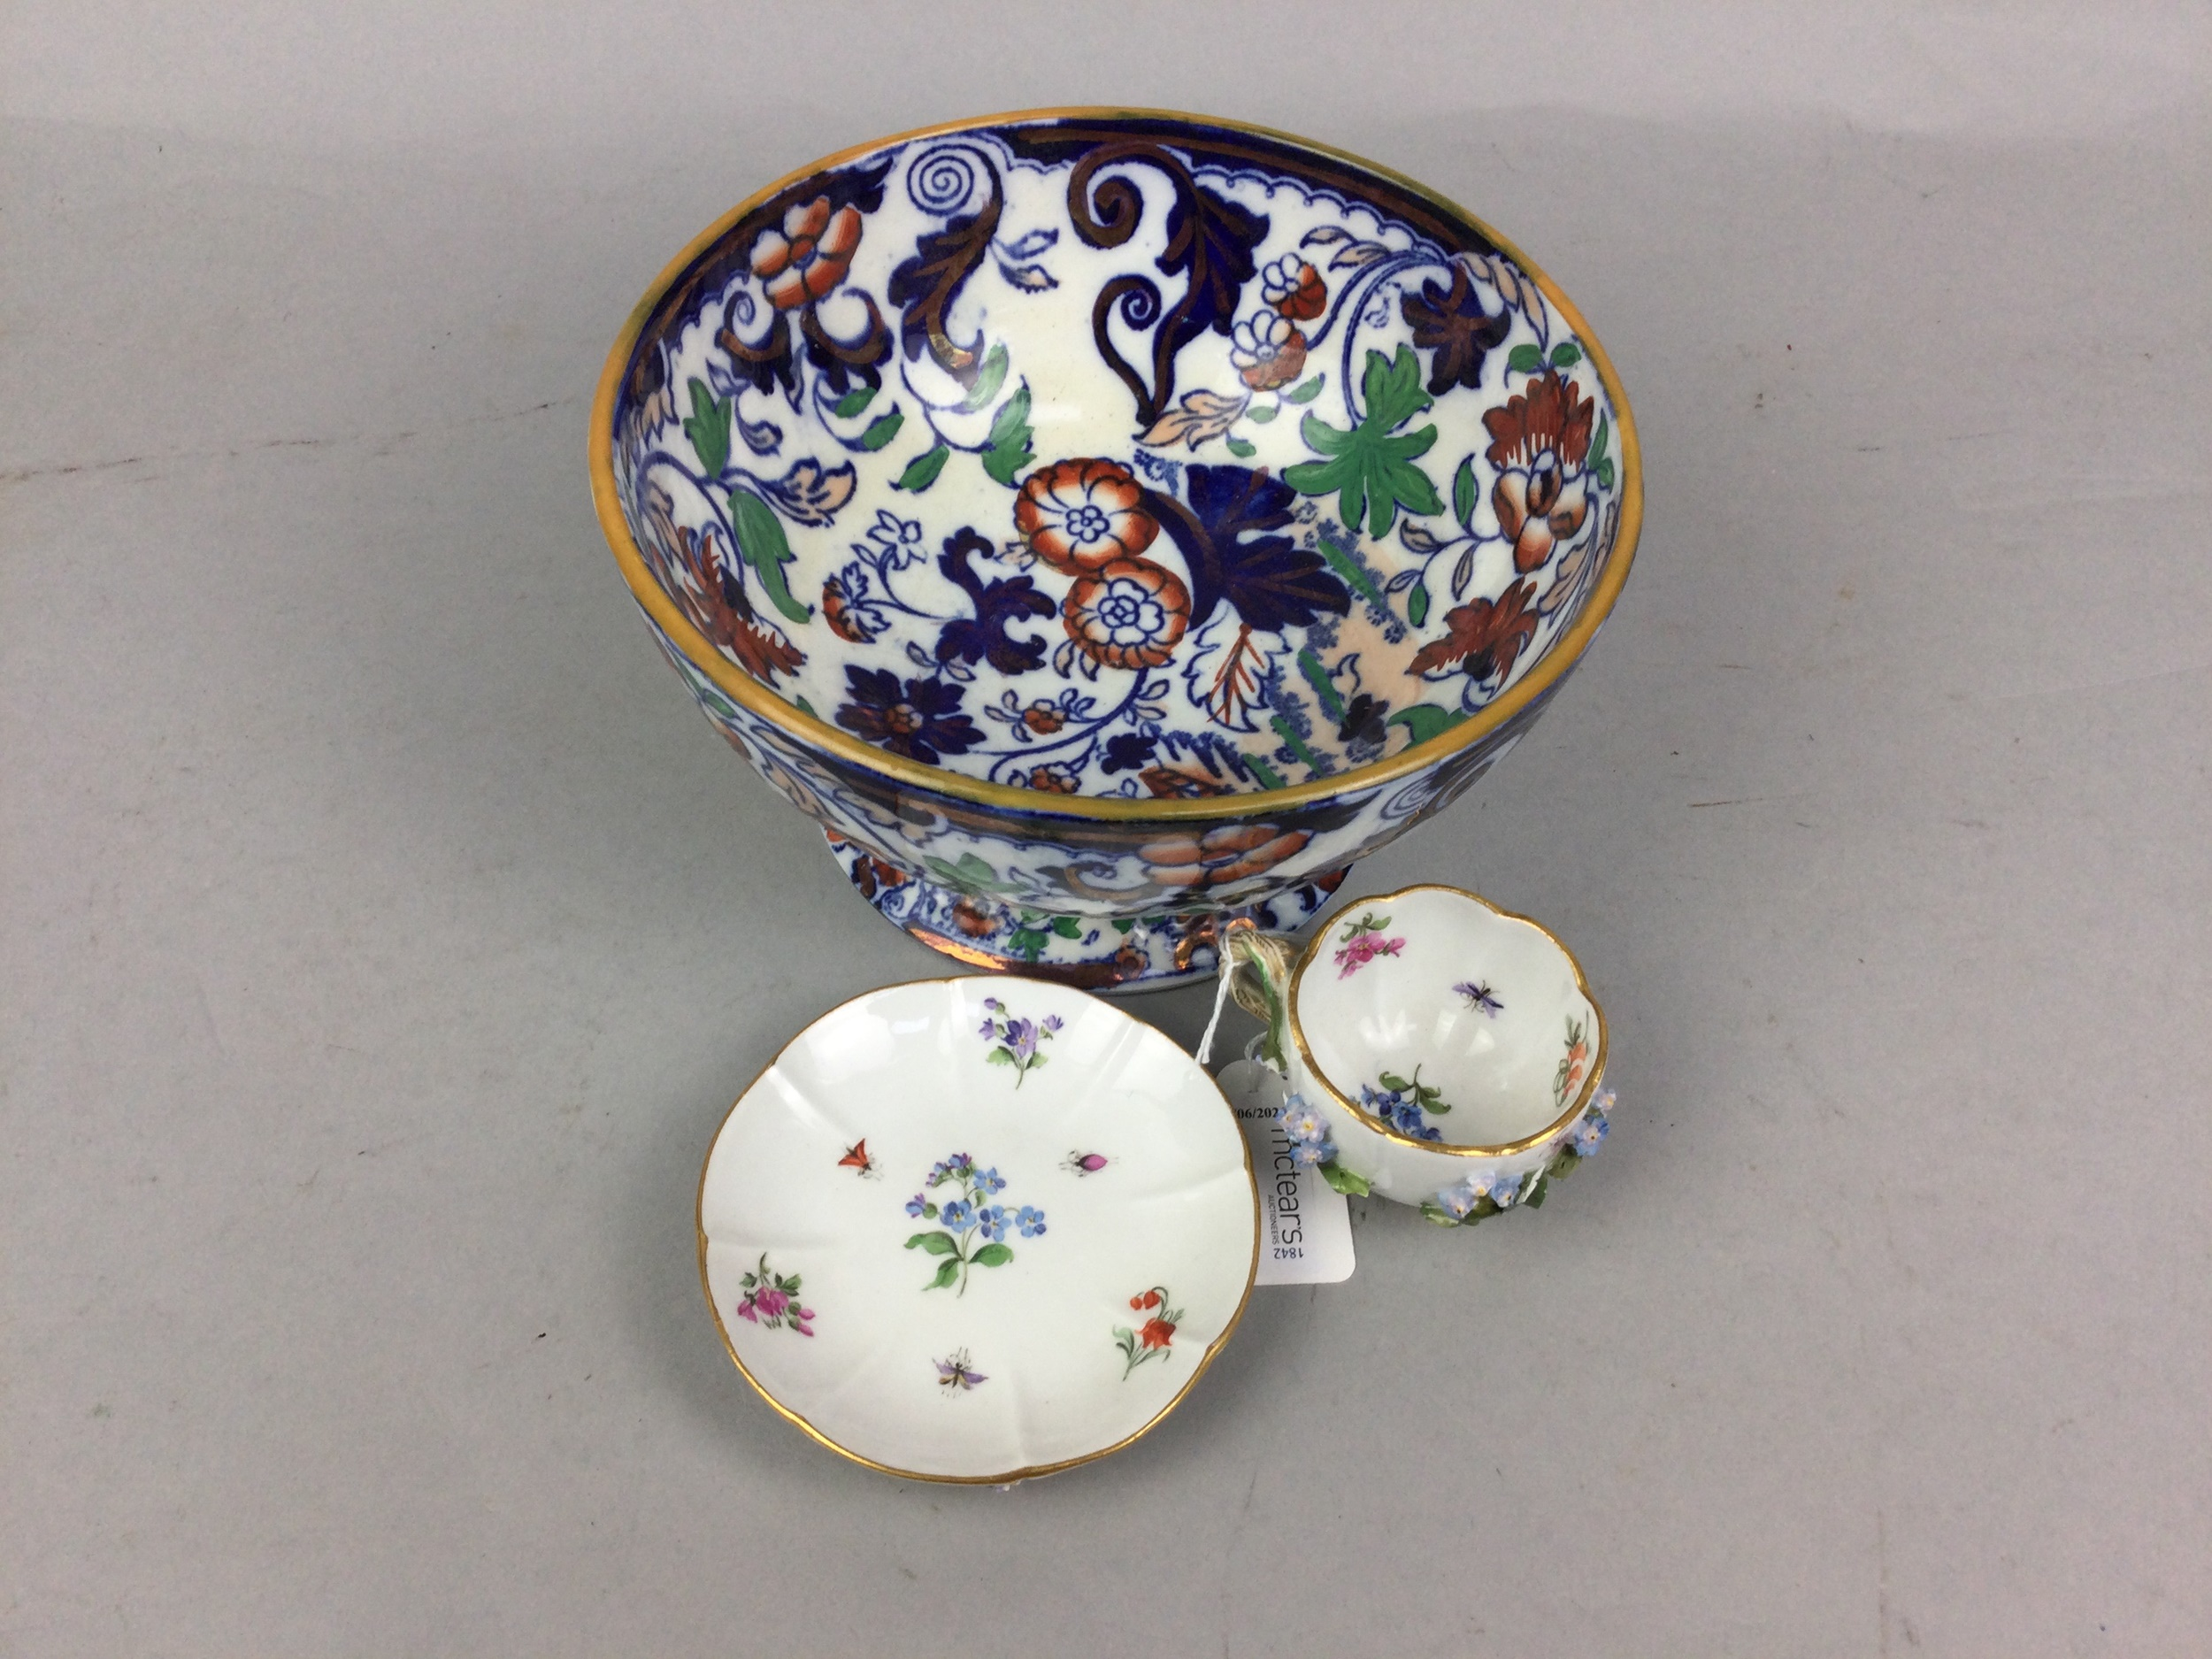 A 19TH CENTURY MEISSEN CUP AND SAUCER AND AN AMHERST BOWL